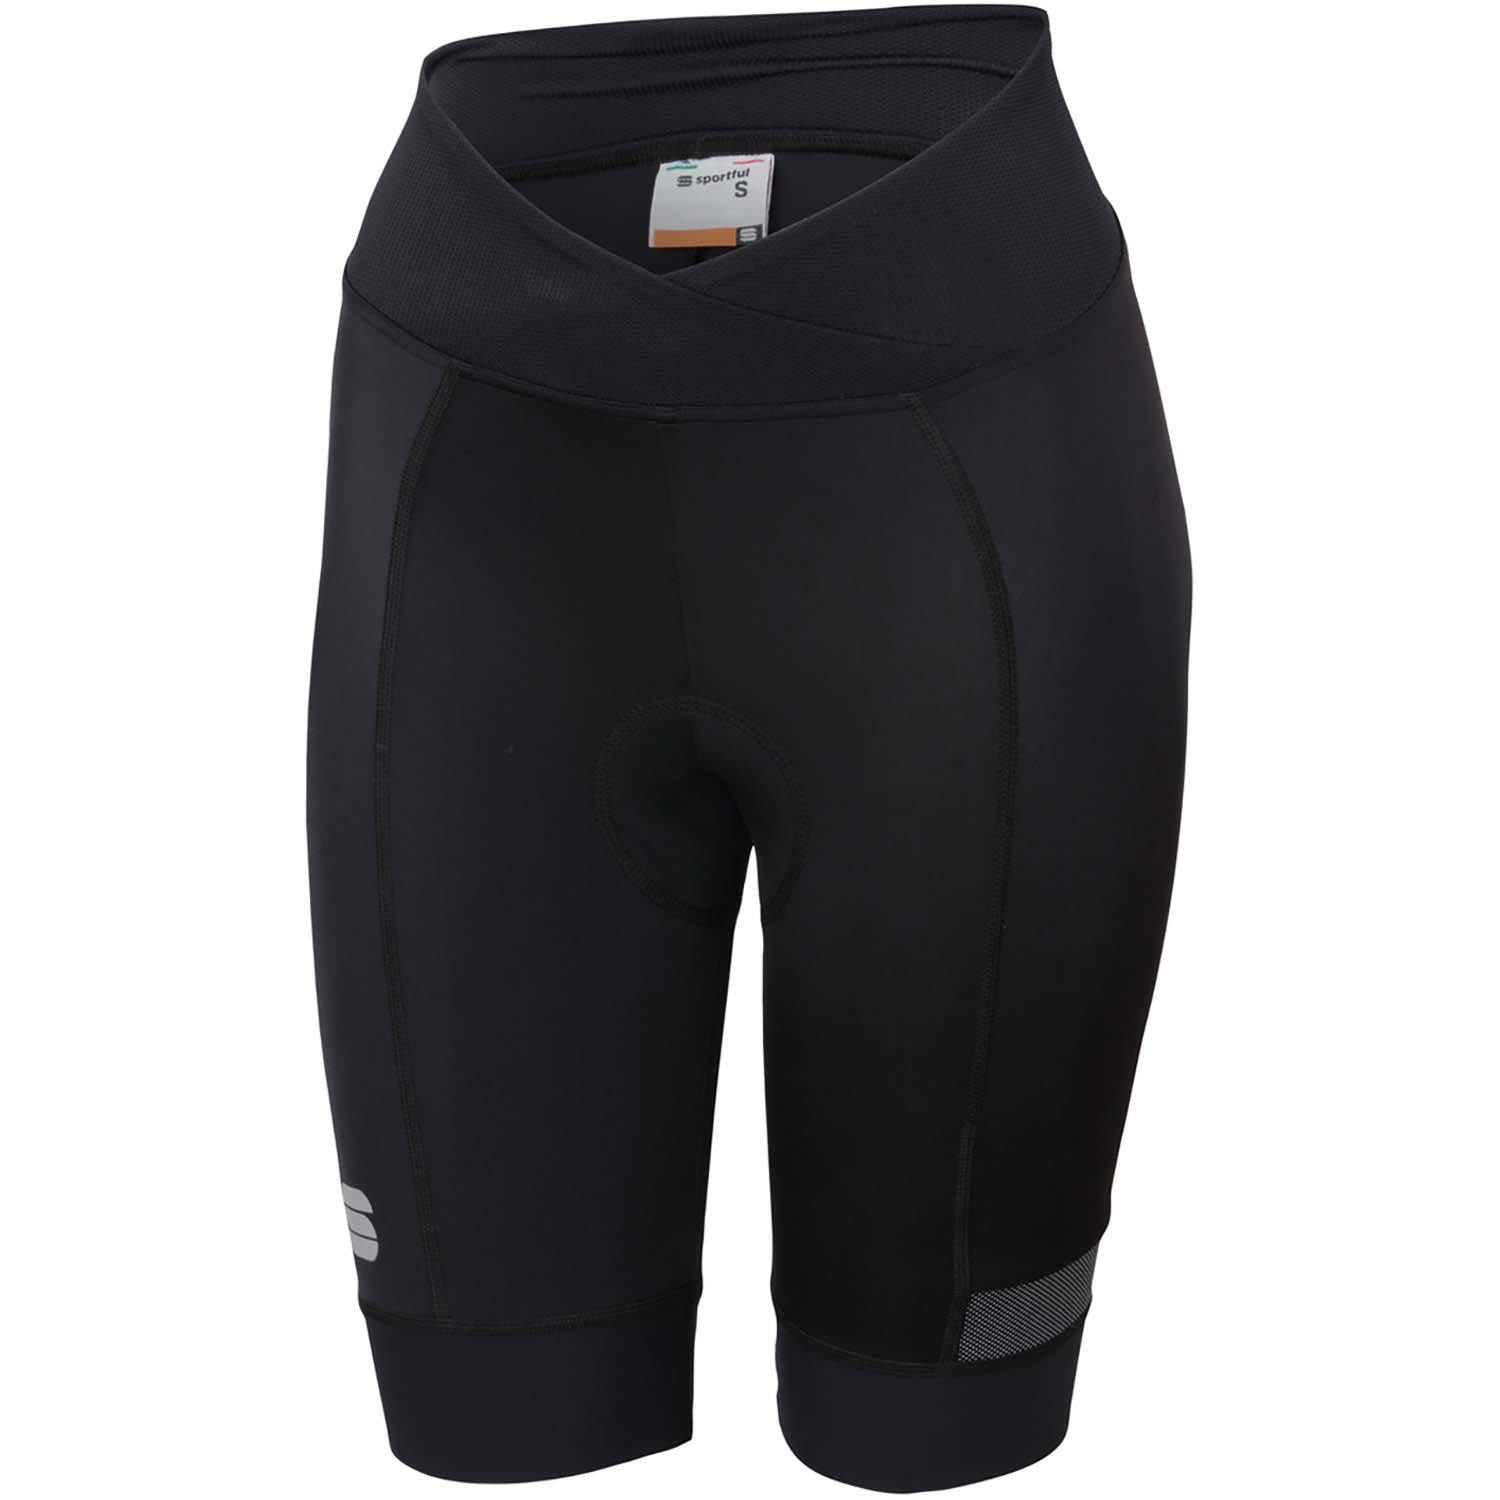 Sportful-Sportful Giara Women's Shorts-Black-XS-SF020240021-saddleback-elite-performance-cycling